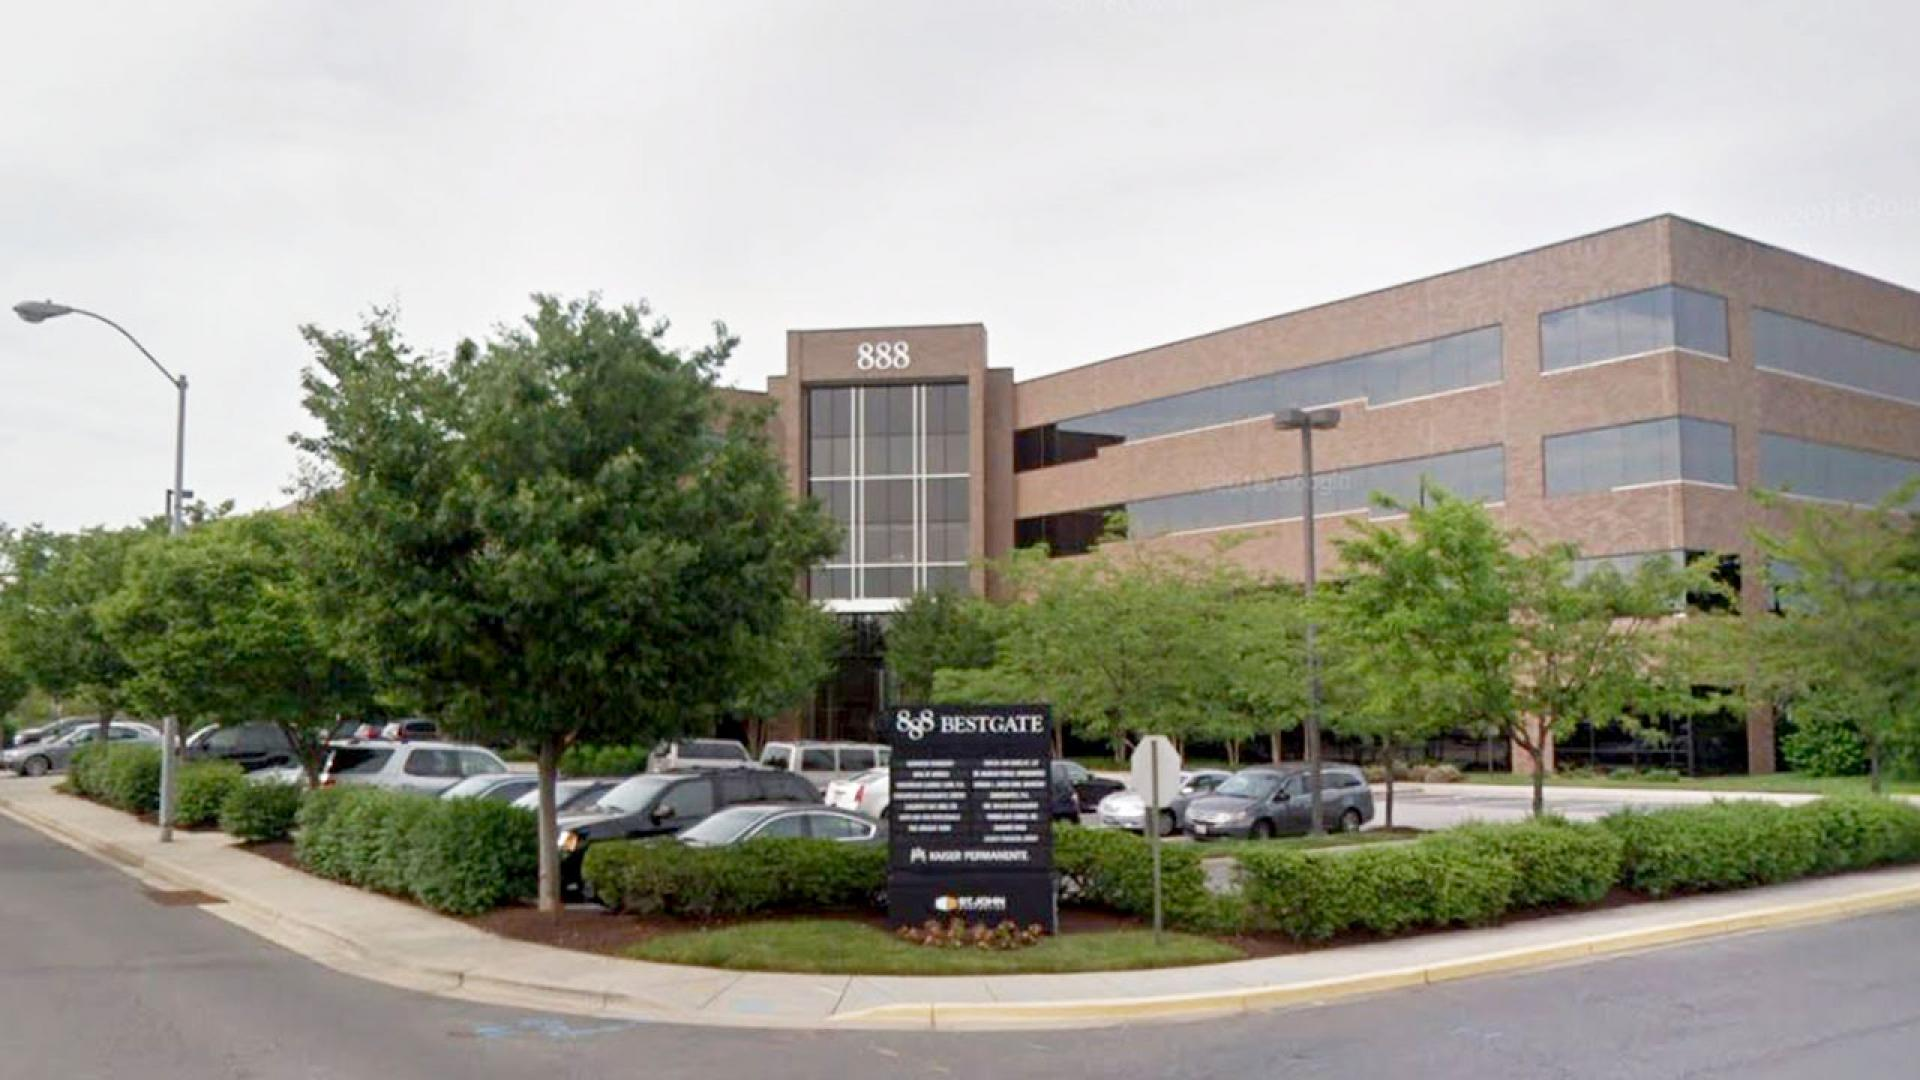 Five people were killed in a shooting at the Capital Gazette newspaper.